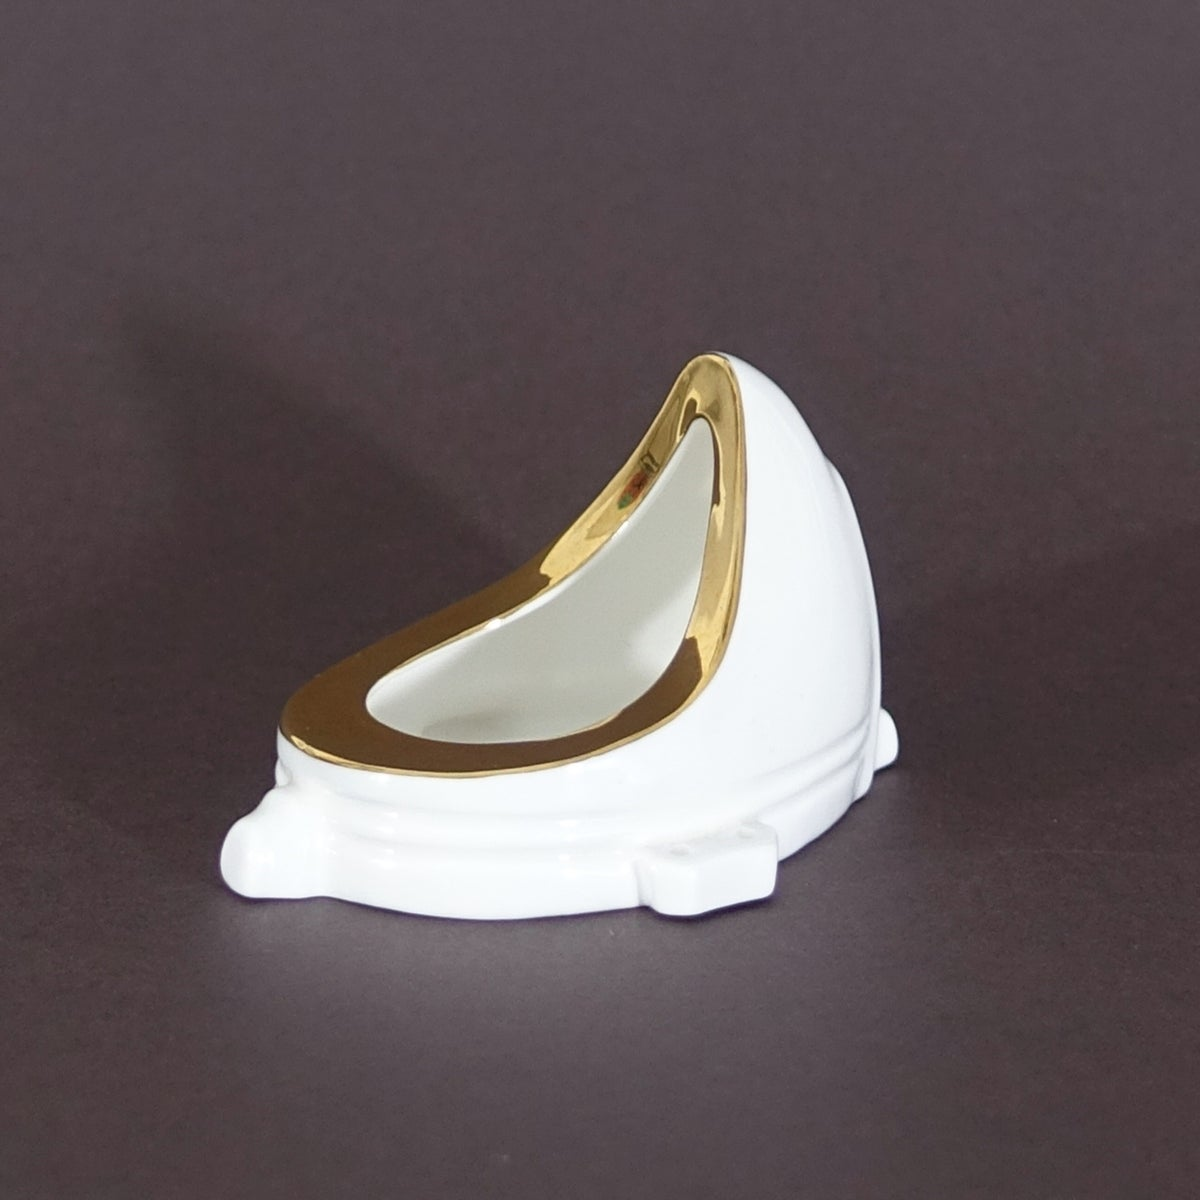 Image of Special Gold Edition Dada Egg Cup -  04